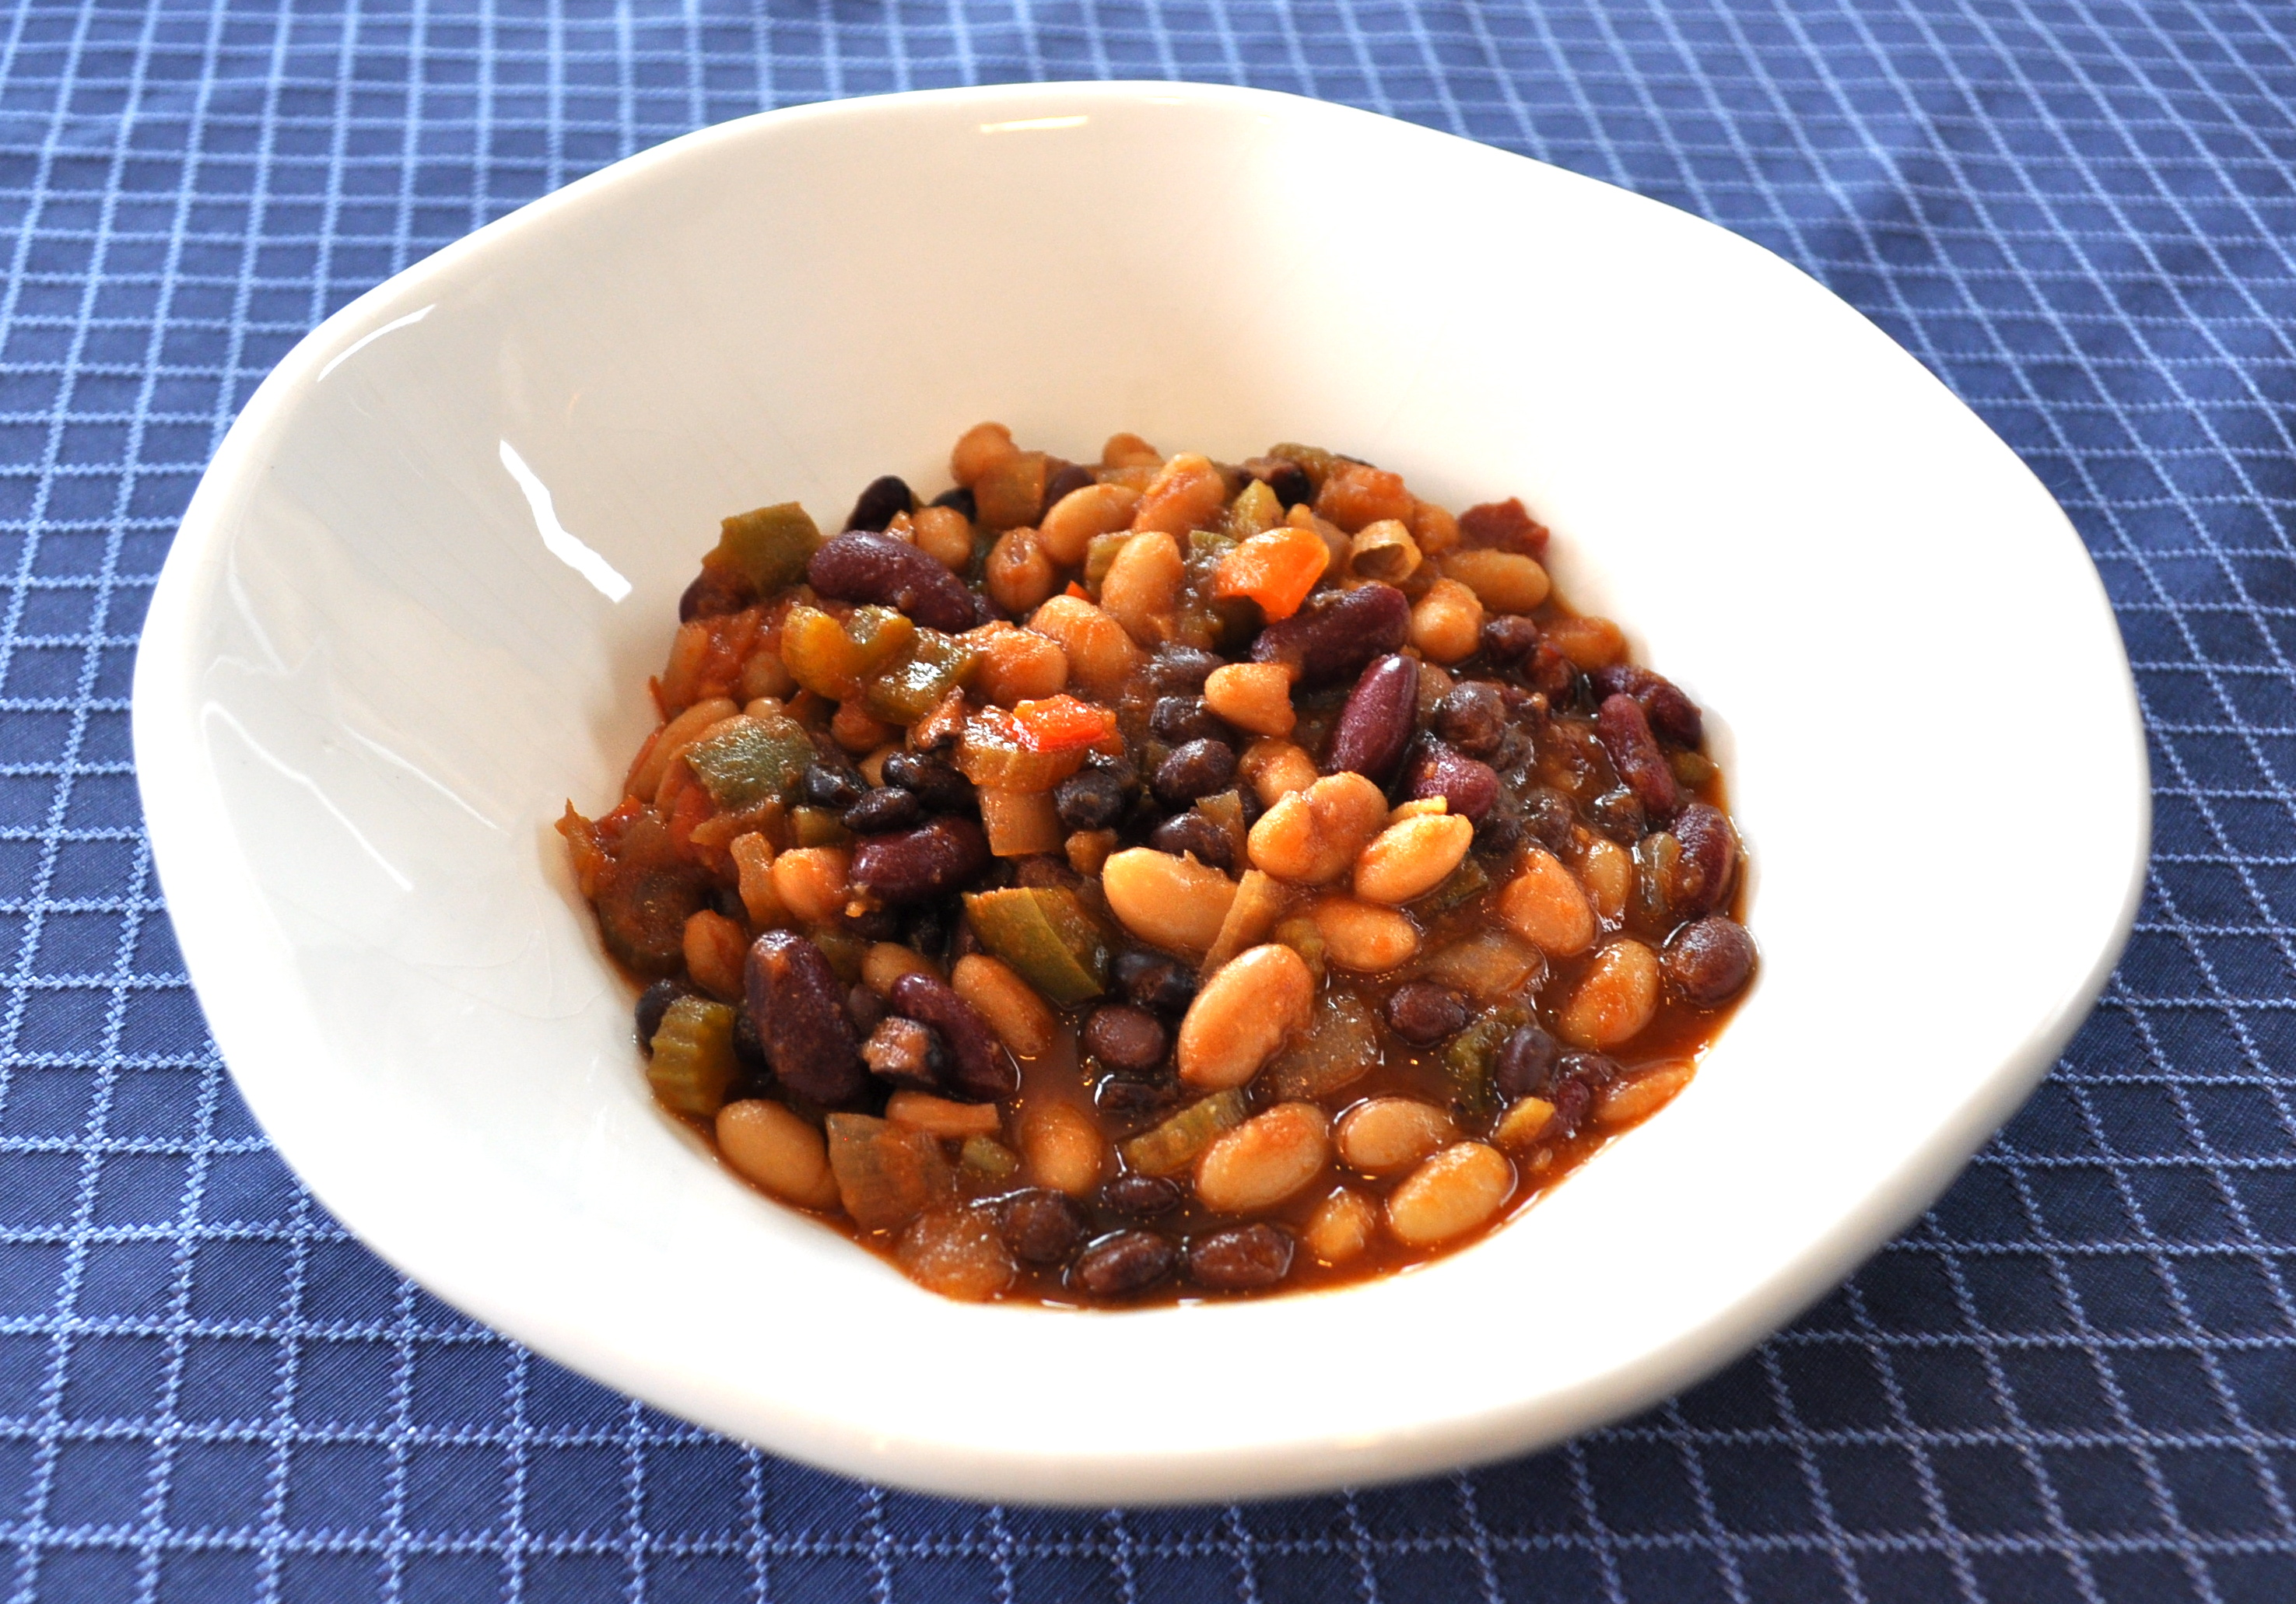 Red, White and Black Baked Beans